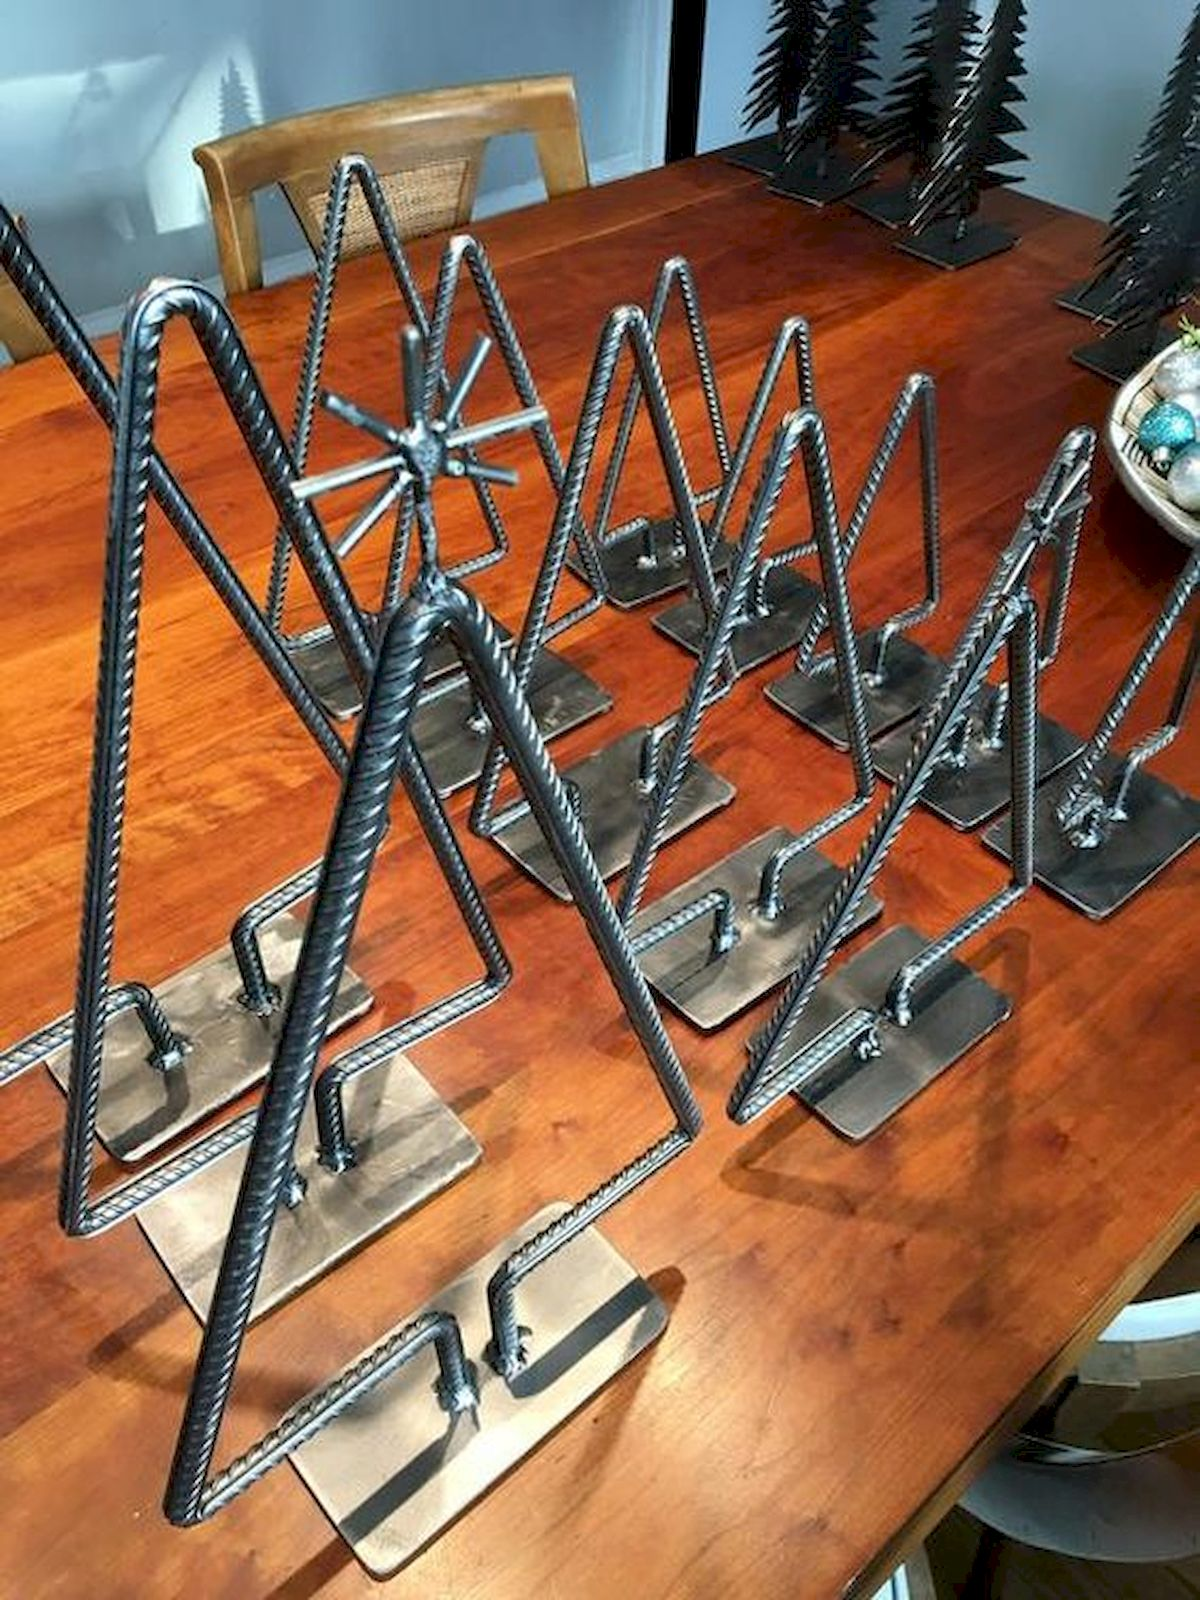 50+ Easy DIY Welding Projects Ideas for Art and Decor (23)